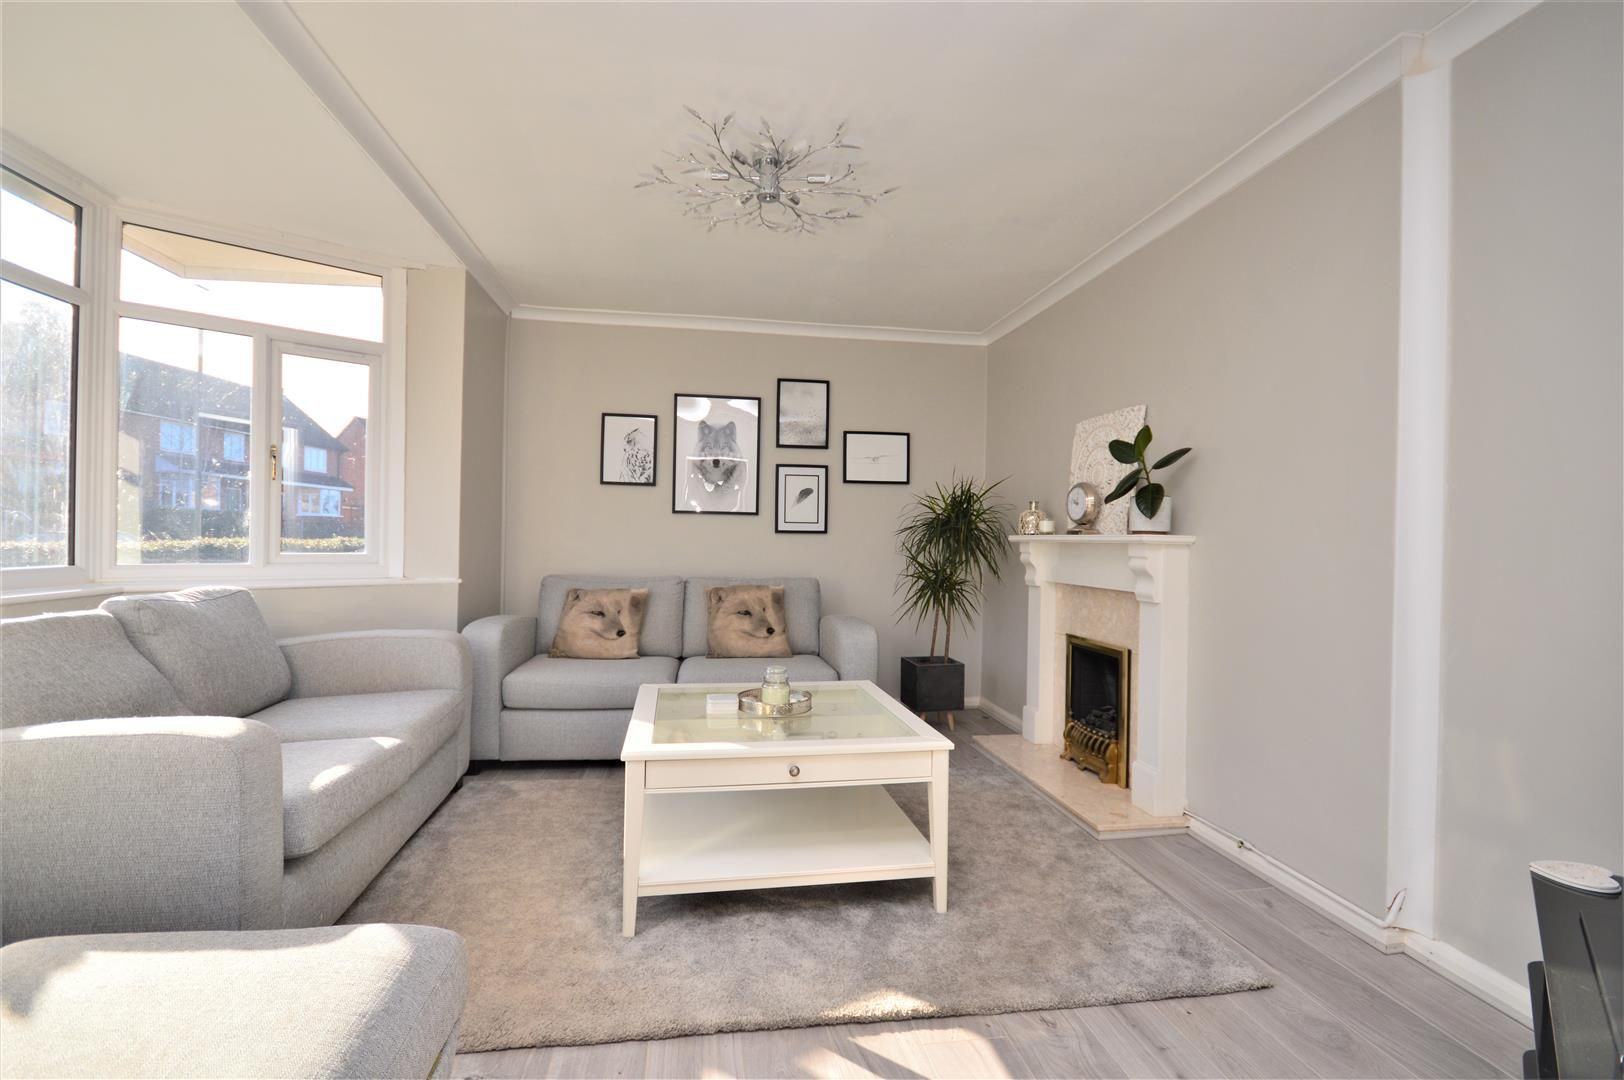 3 bed end-of-terrace for sale in Hereford 3